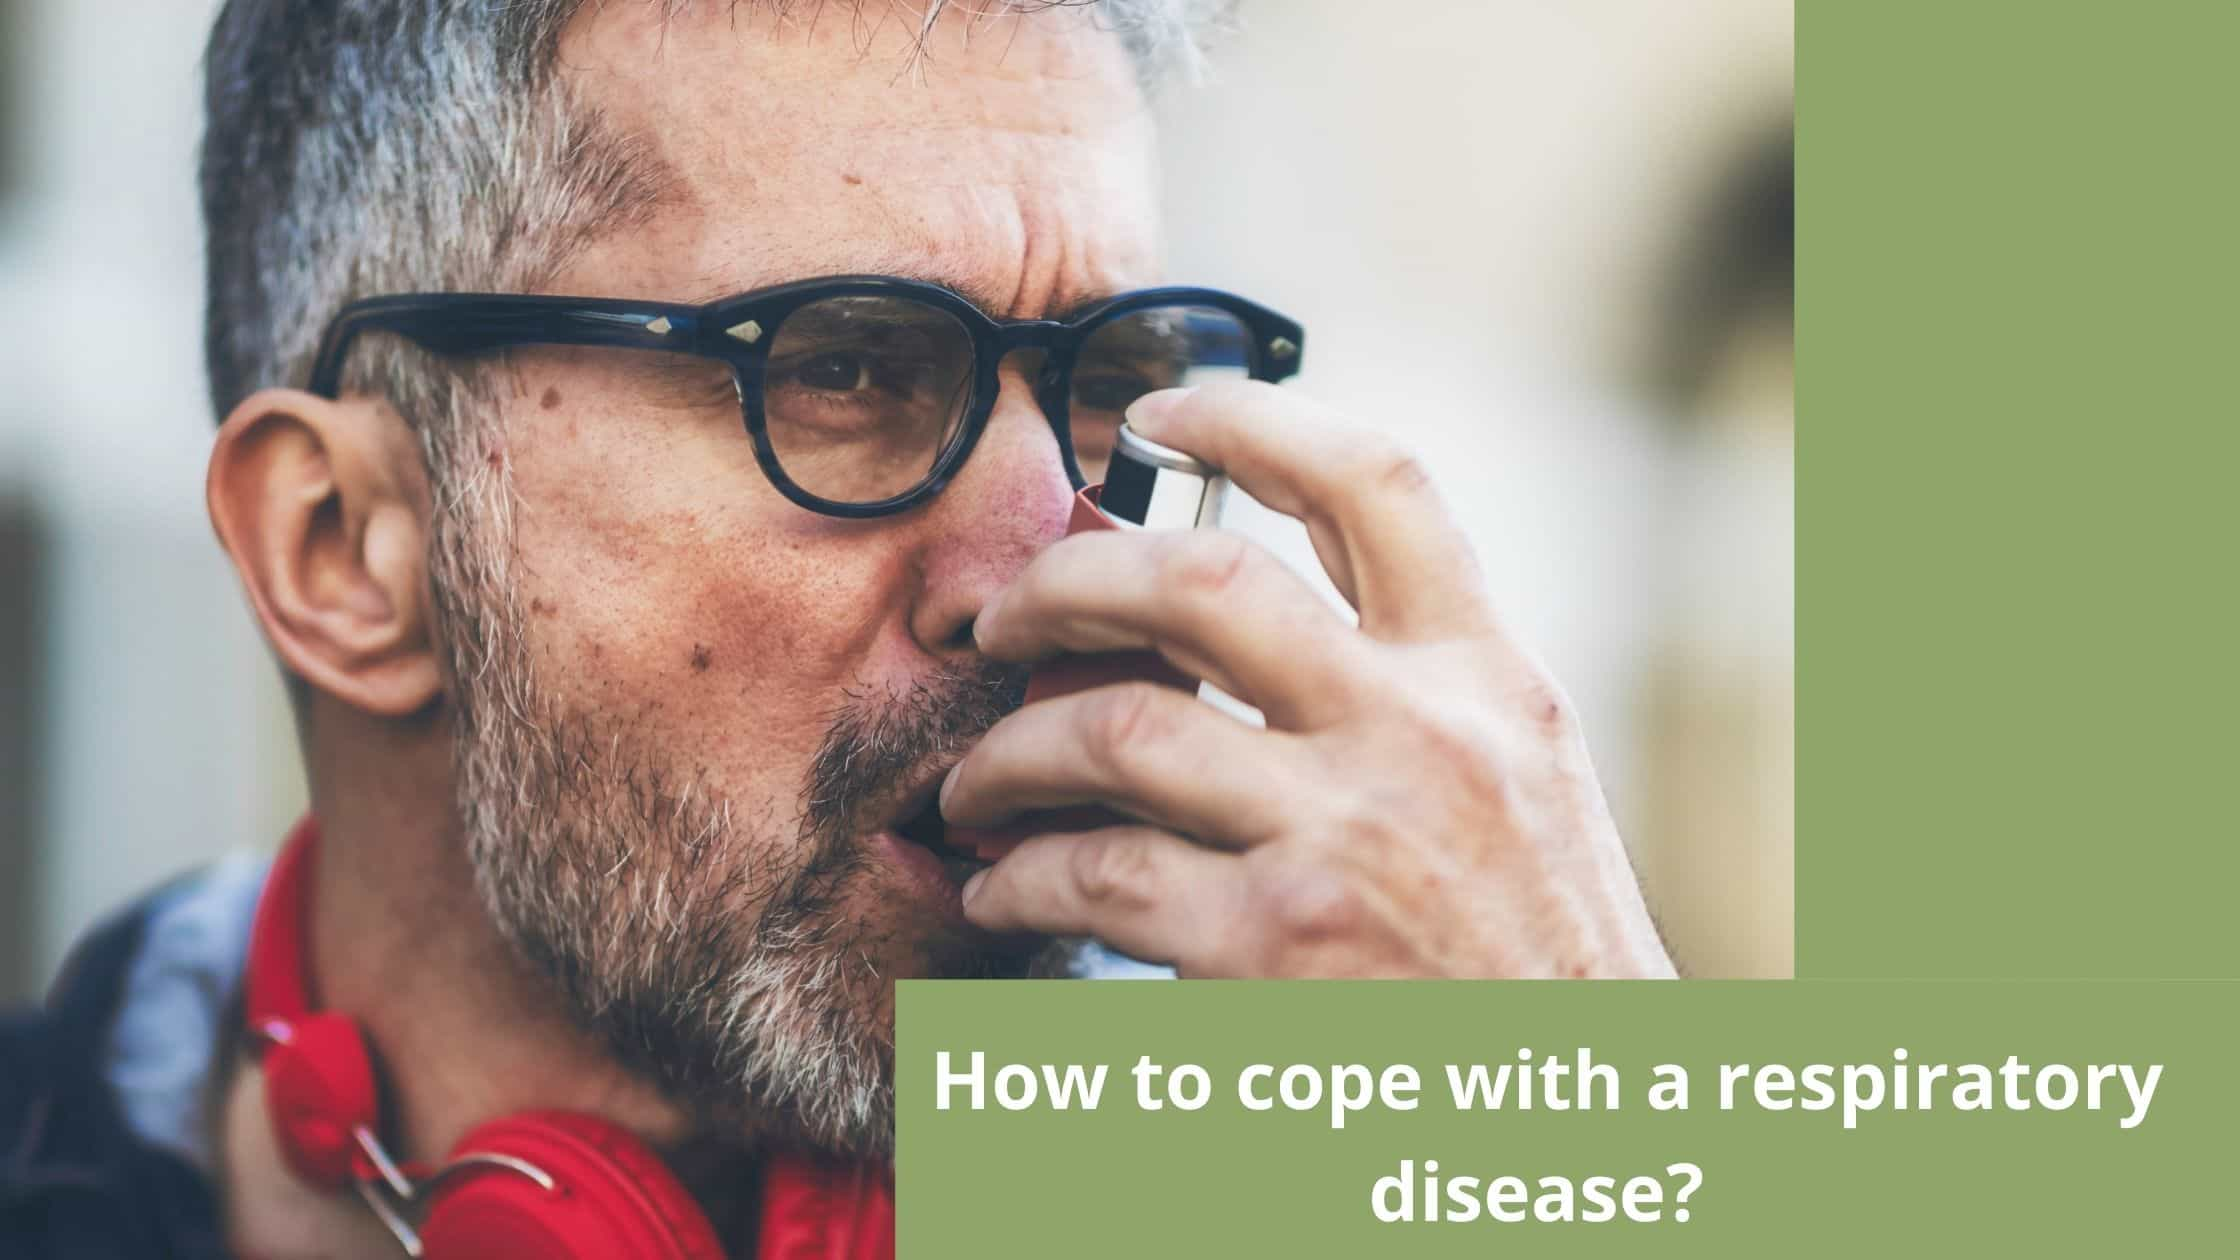 How to cope with a respiratory disease?